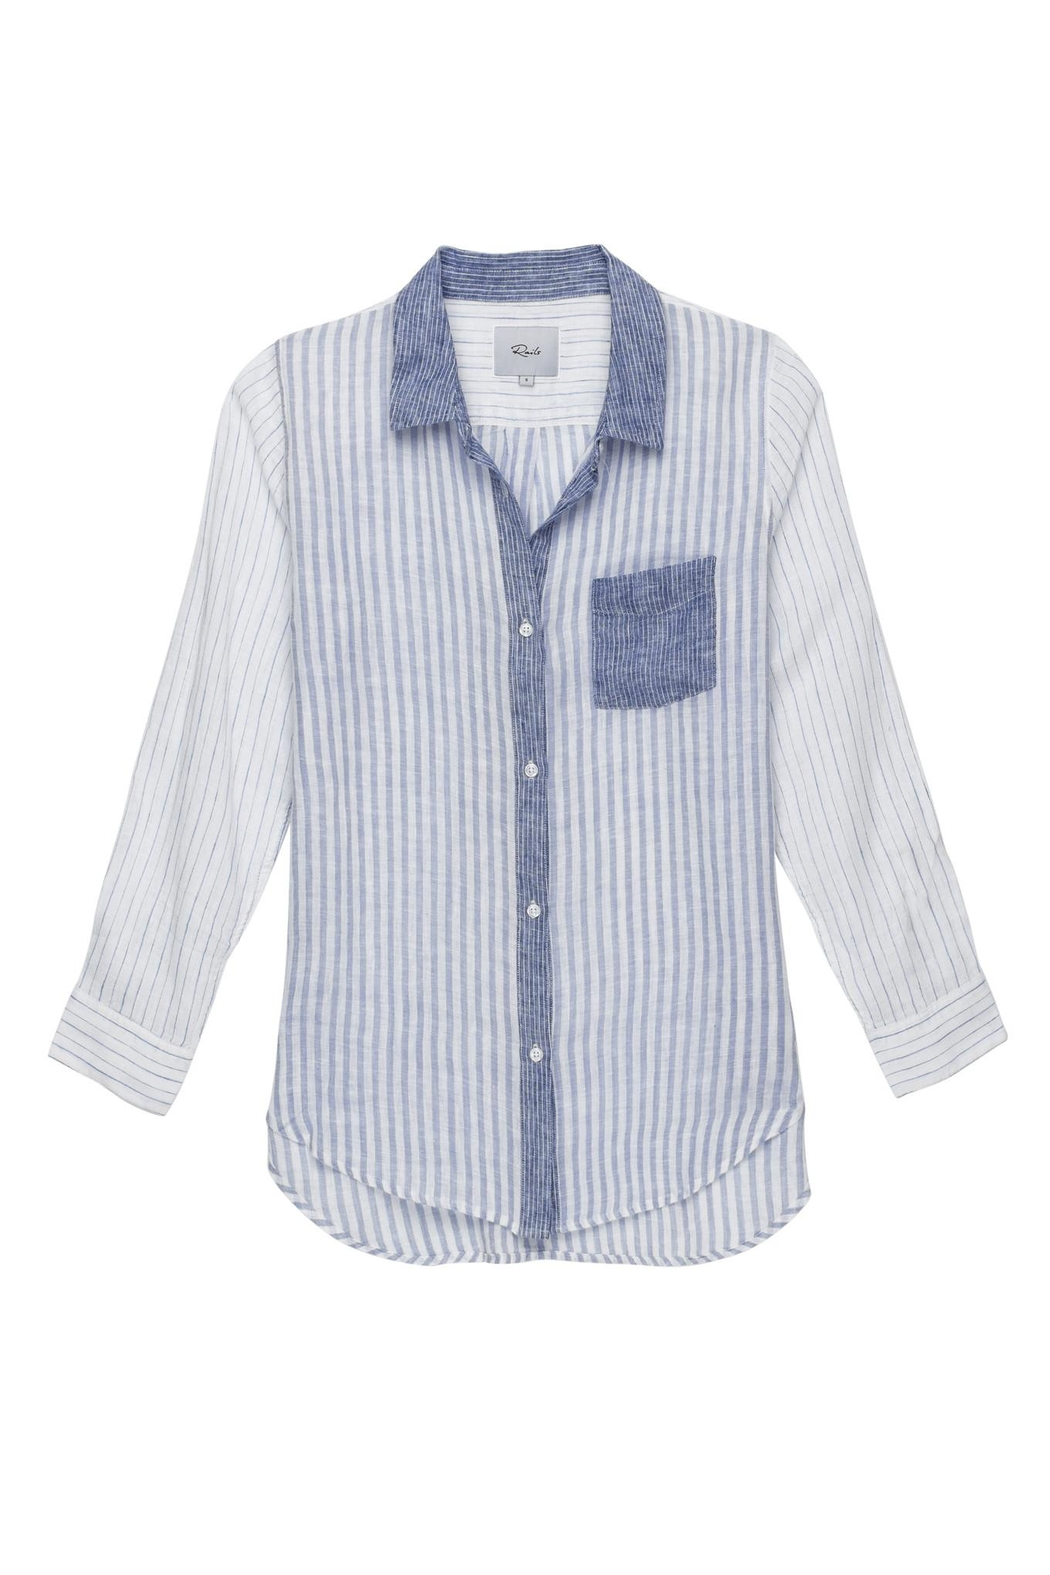 Rails Stripe Shirt - Front Cropped Image